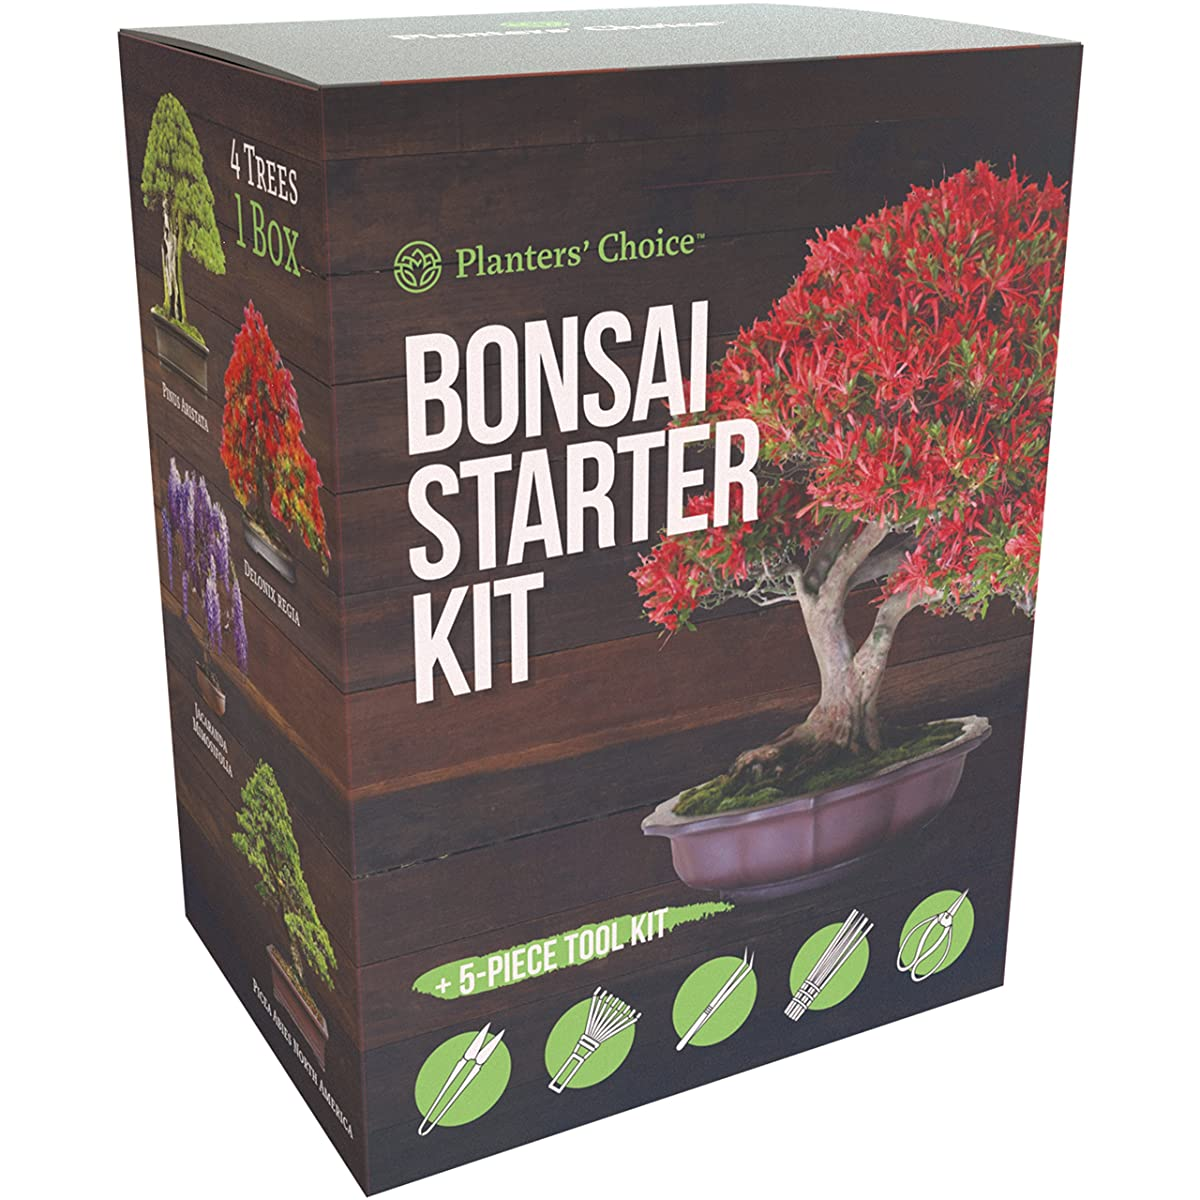 Planters Choice Bonsai Starter Kit + Tool Kit - The Complete Kit to Easily Grow 4 Bonsai Trees from Seed with Comprehensive Guide & Bamboo Plant Markers - Unique Gift Idea